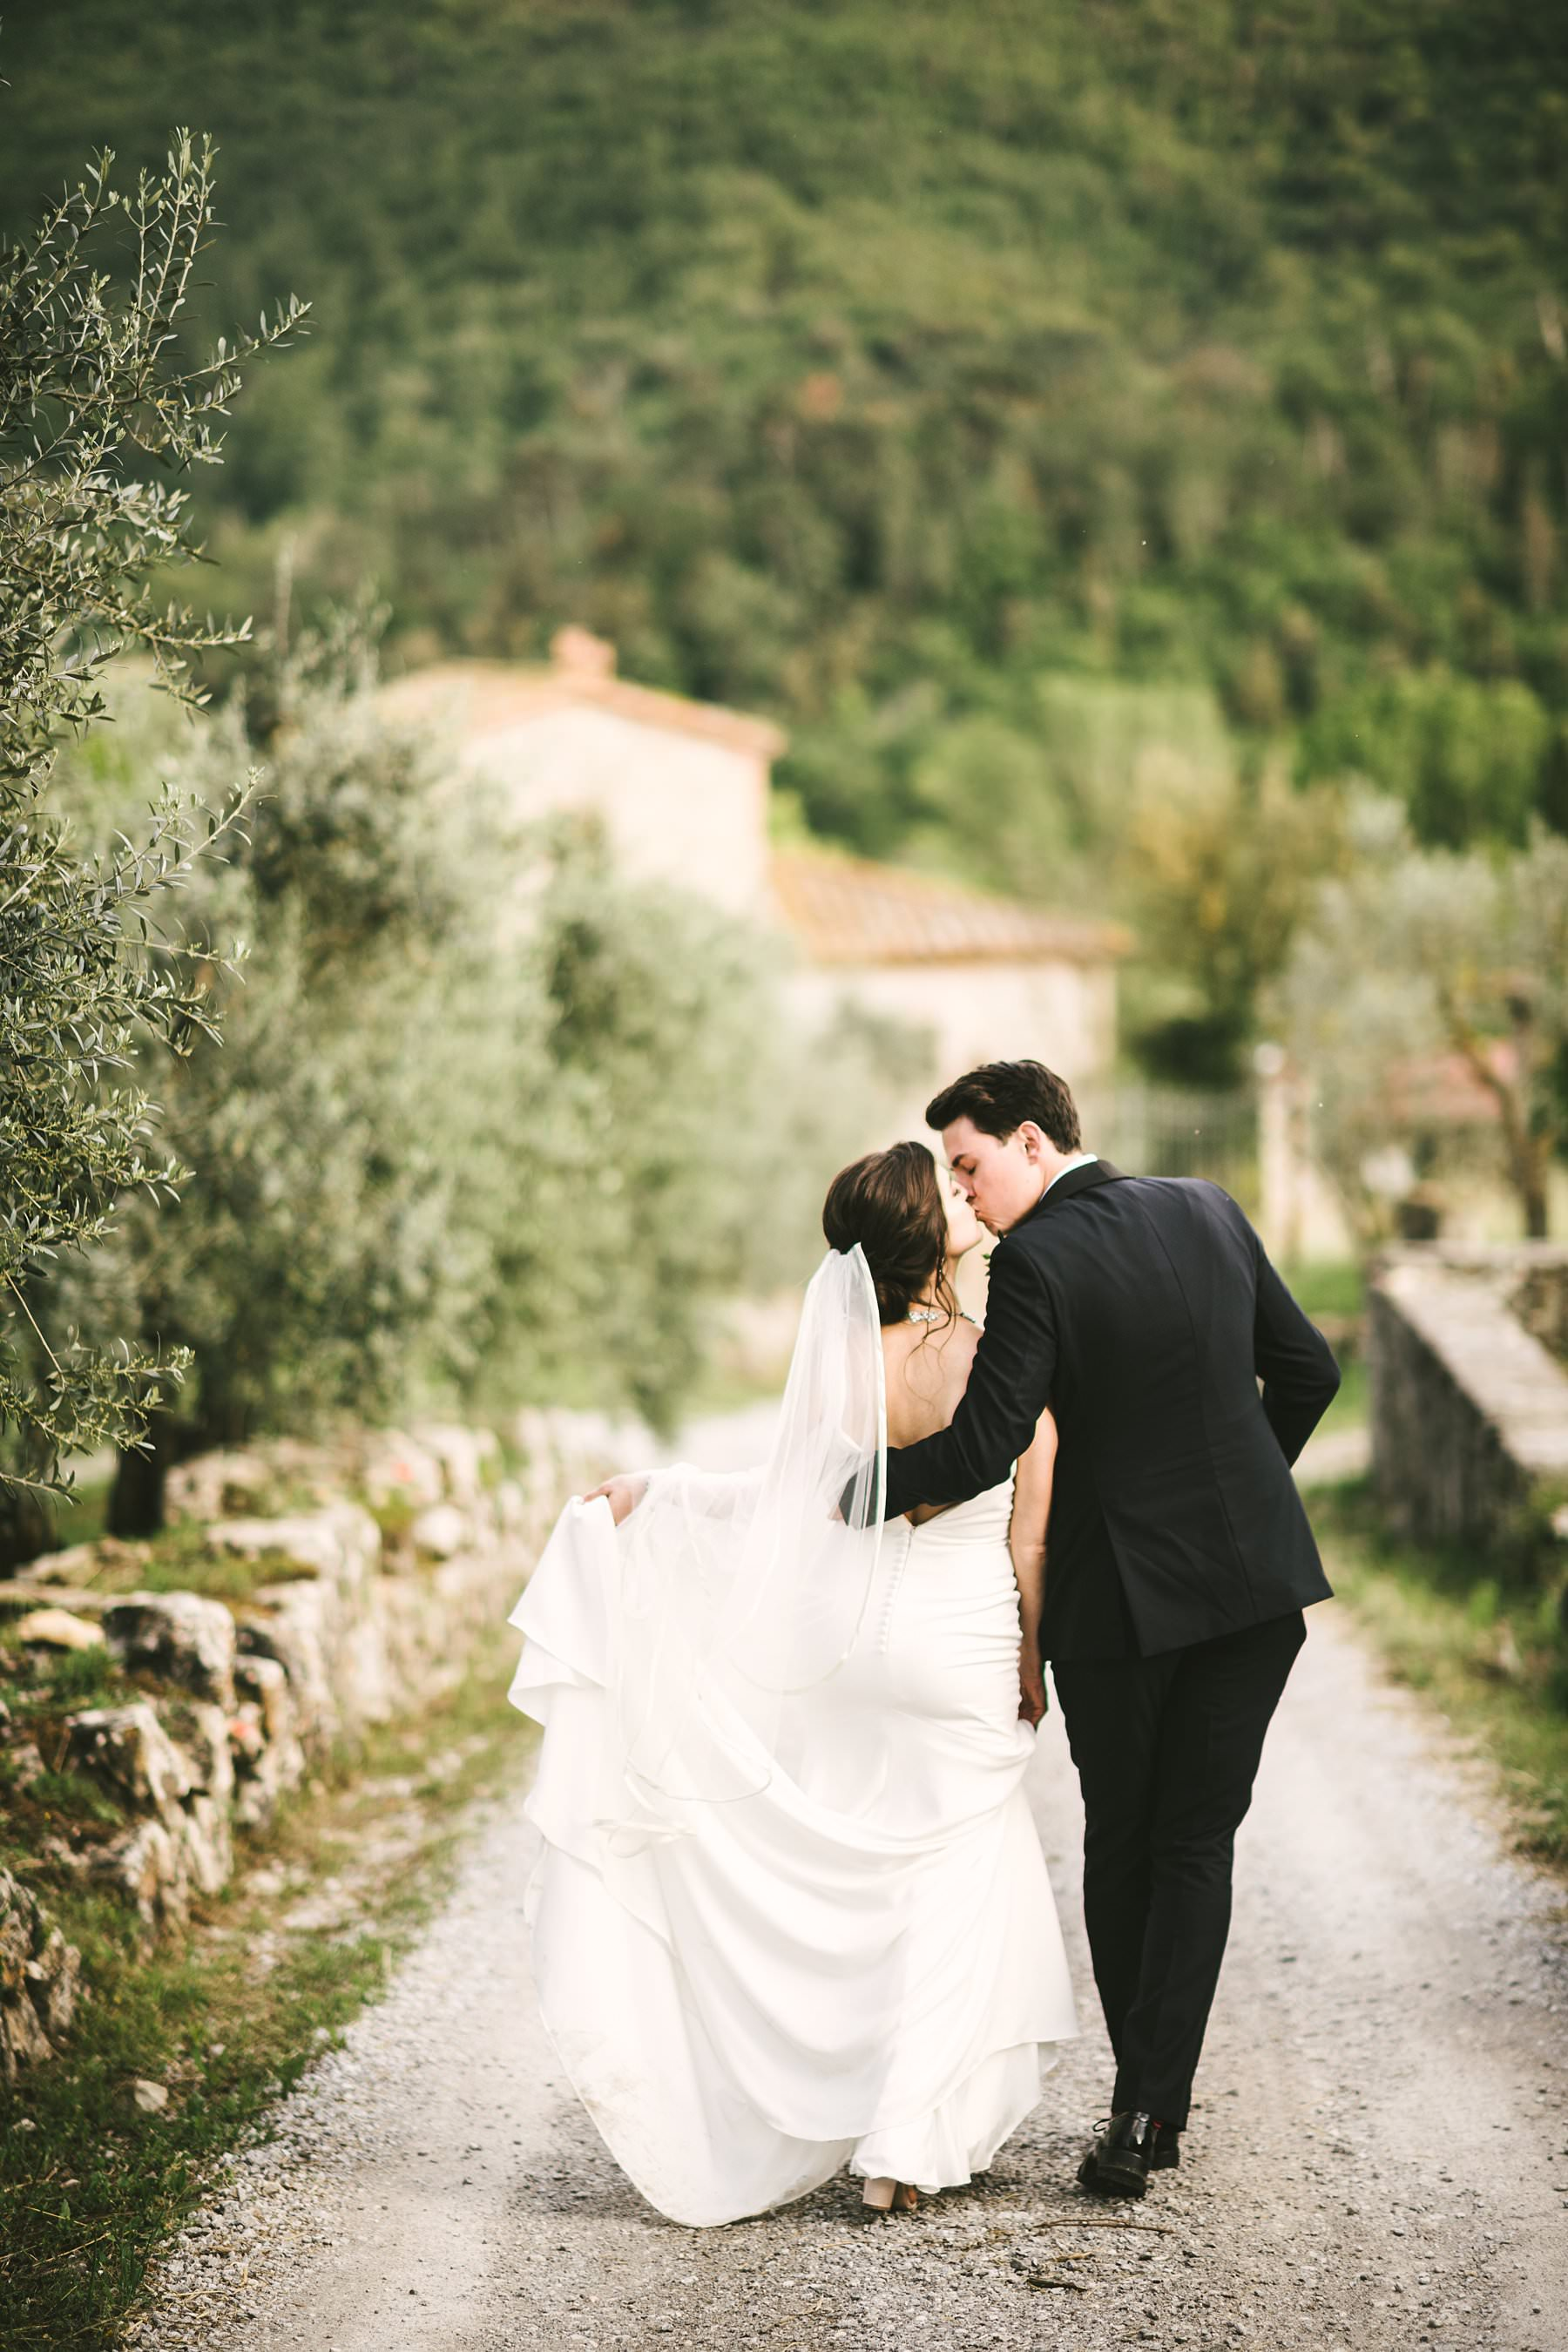 Heartfelt small wedding in the countryside of Tuscany. Lovely and elegant bride and groom portrait session in a white street in the countryside of Tuscany near Palazzo Vanneschi in Bucine